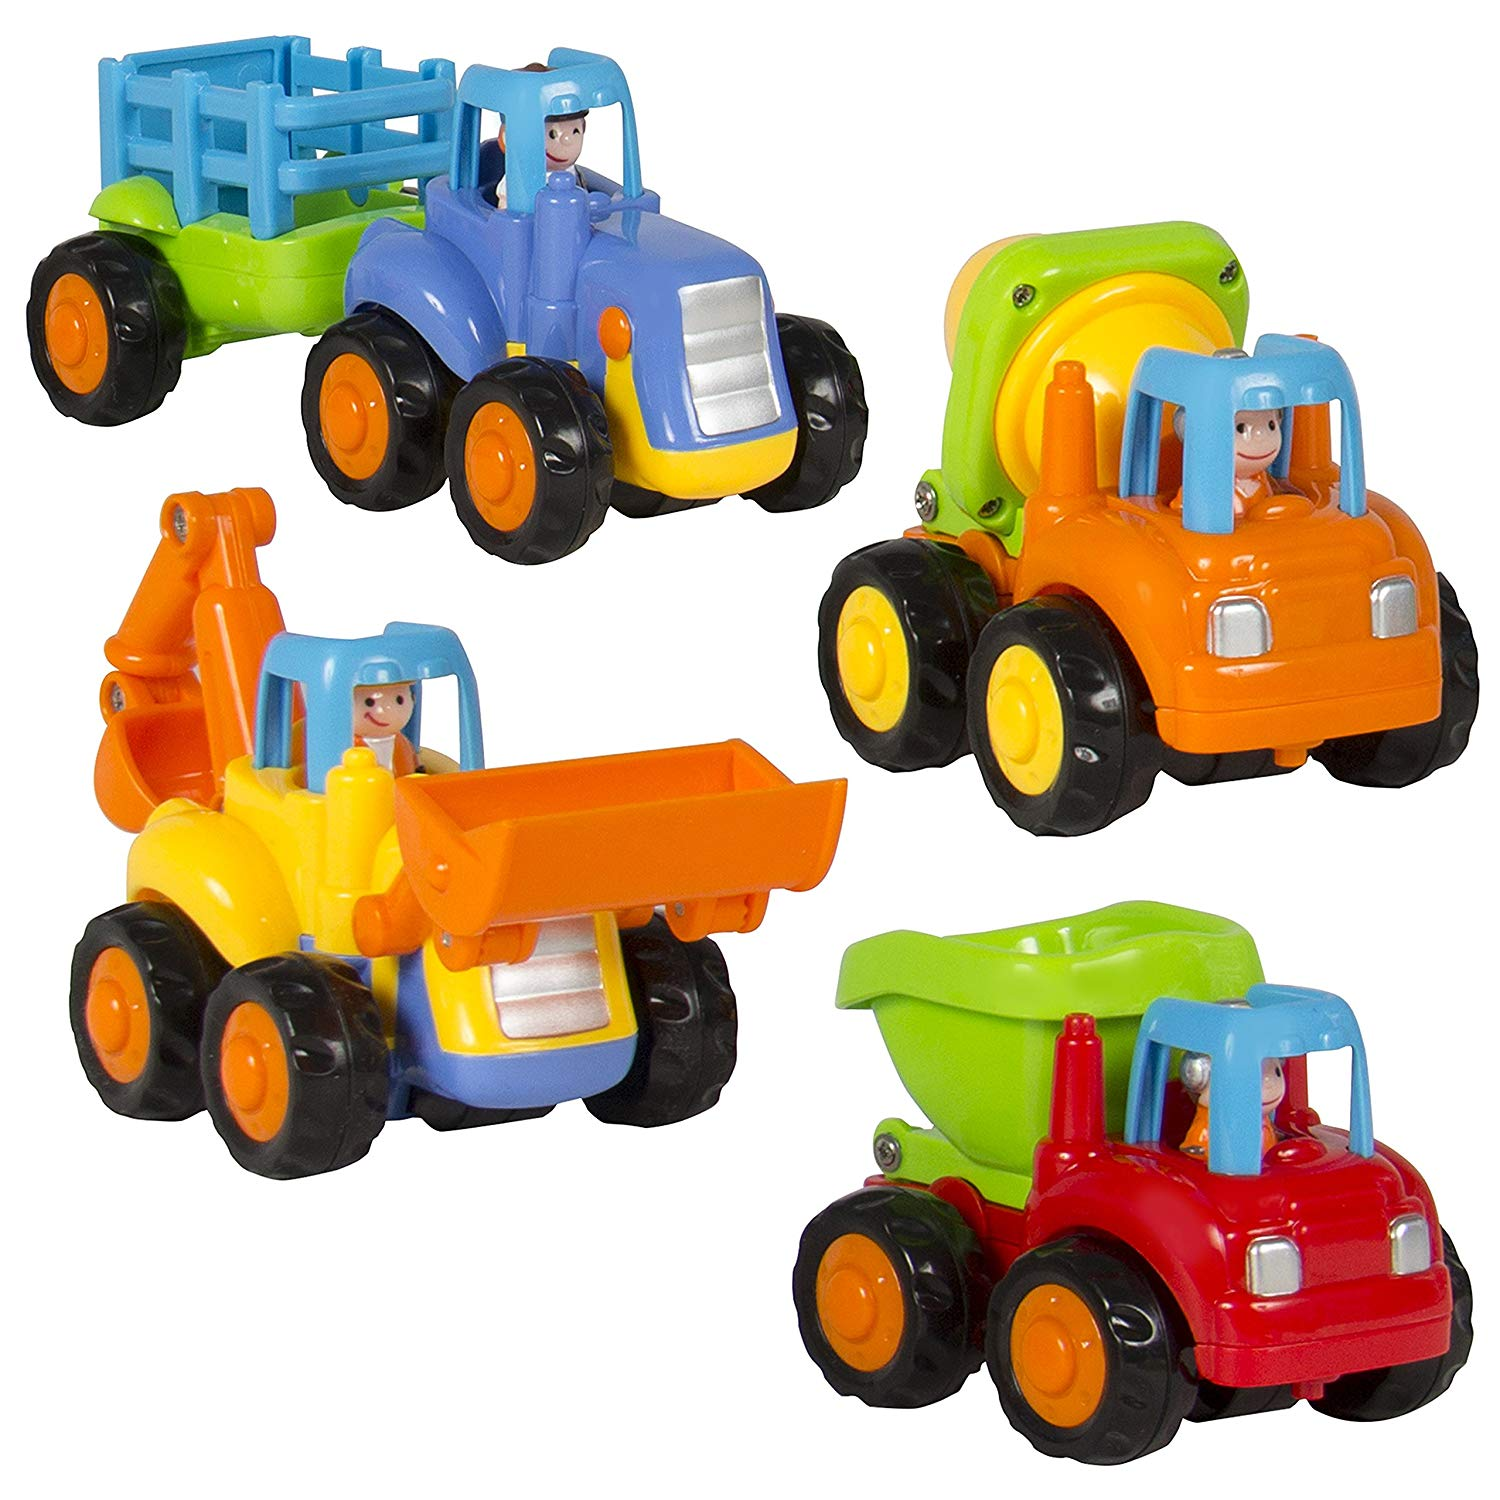 (Set of 4) Push and Go Friction Powered Car Toys,Tractor, Bull Dozer truck, Cement Mixer, Dump truck